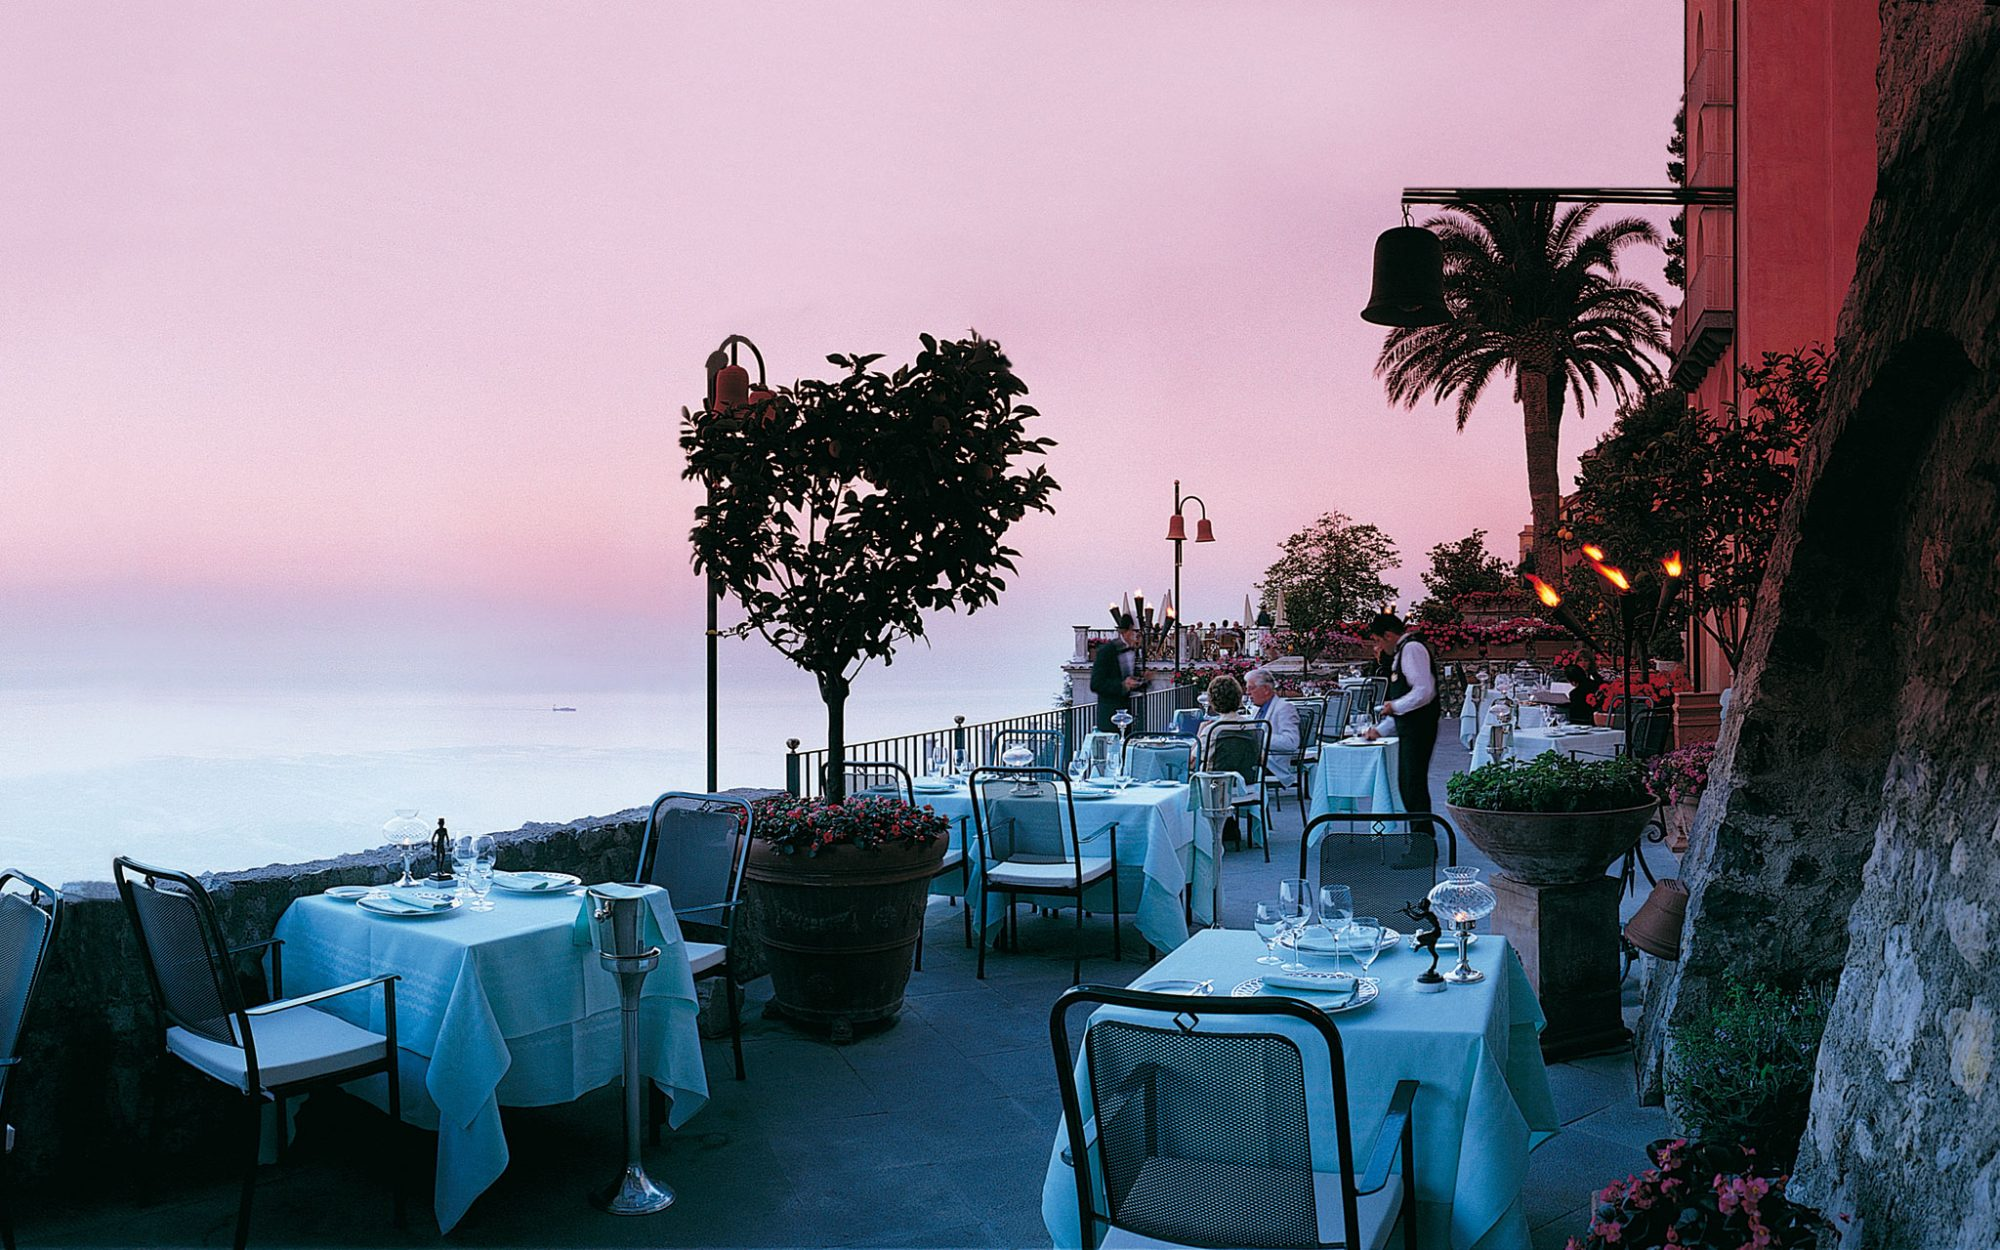 World's Most Amazing Restaurants With a View: Rosellinis